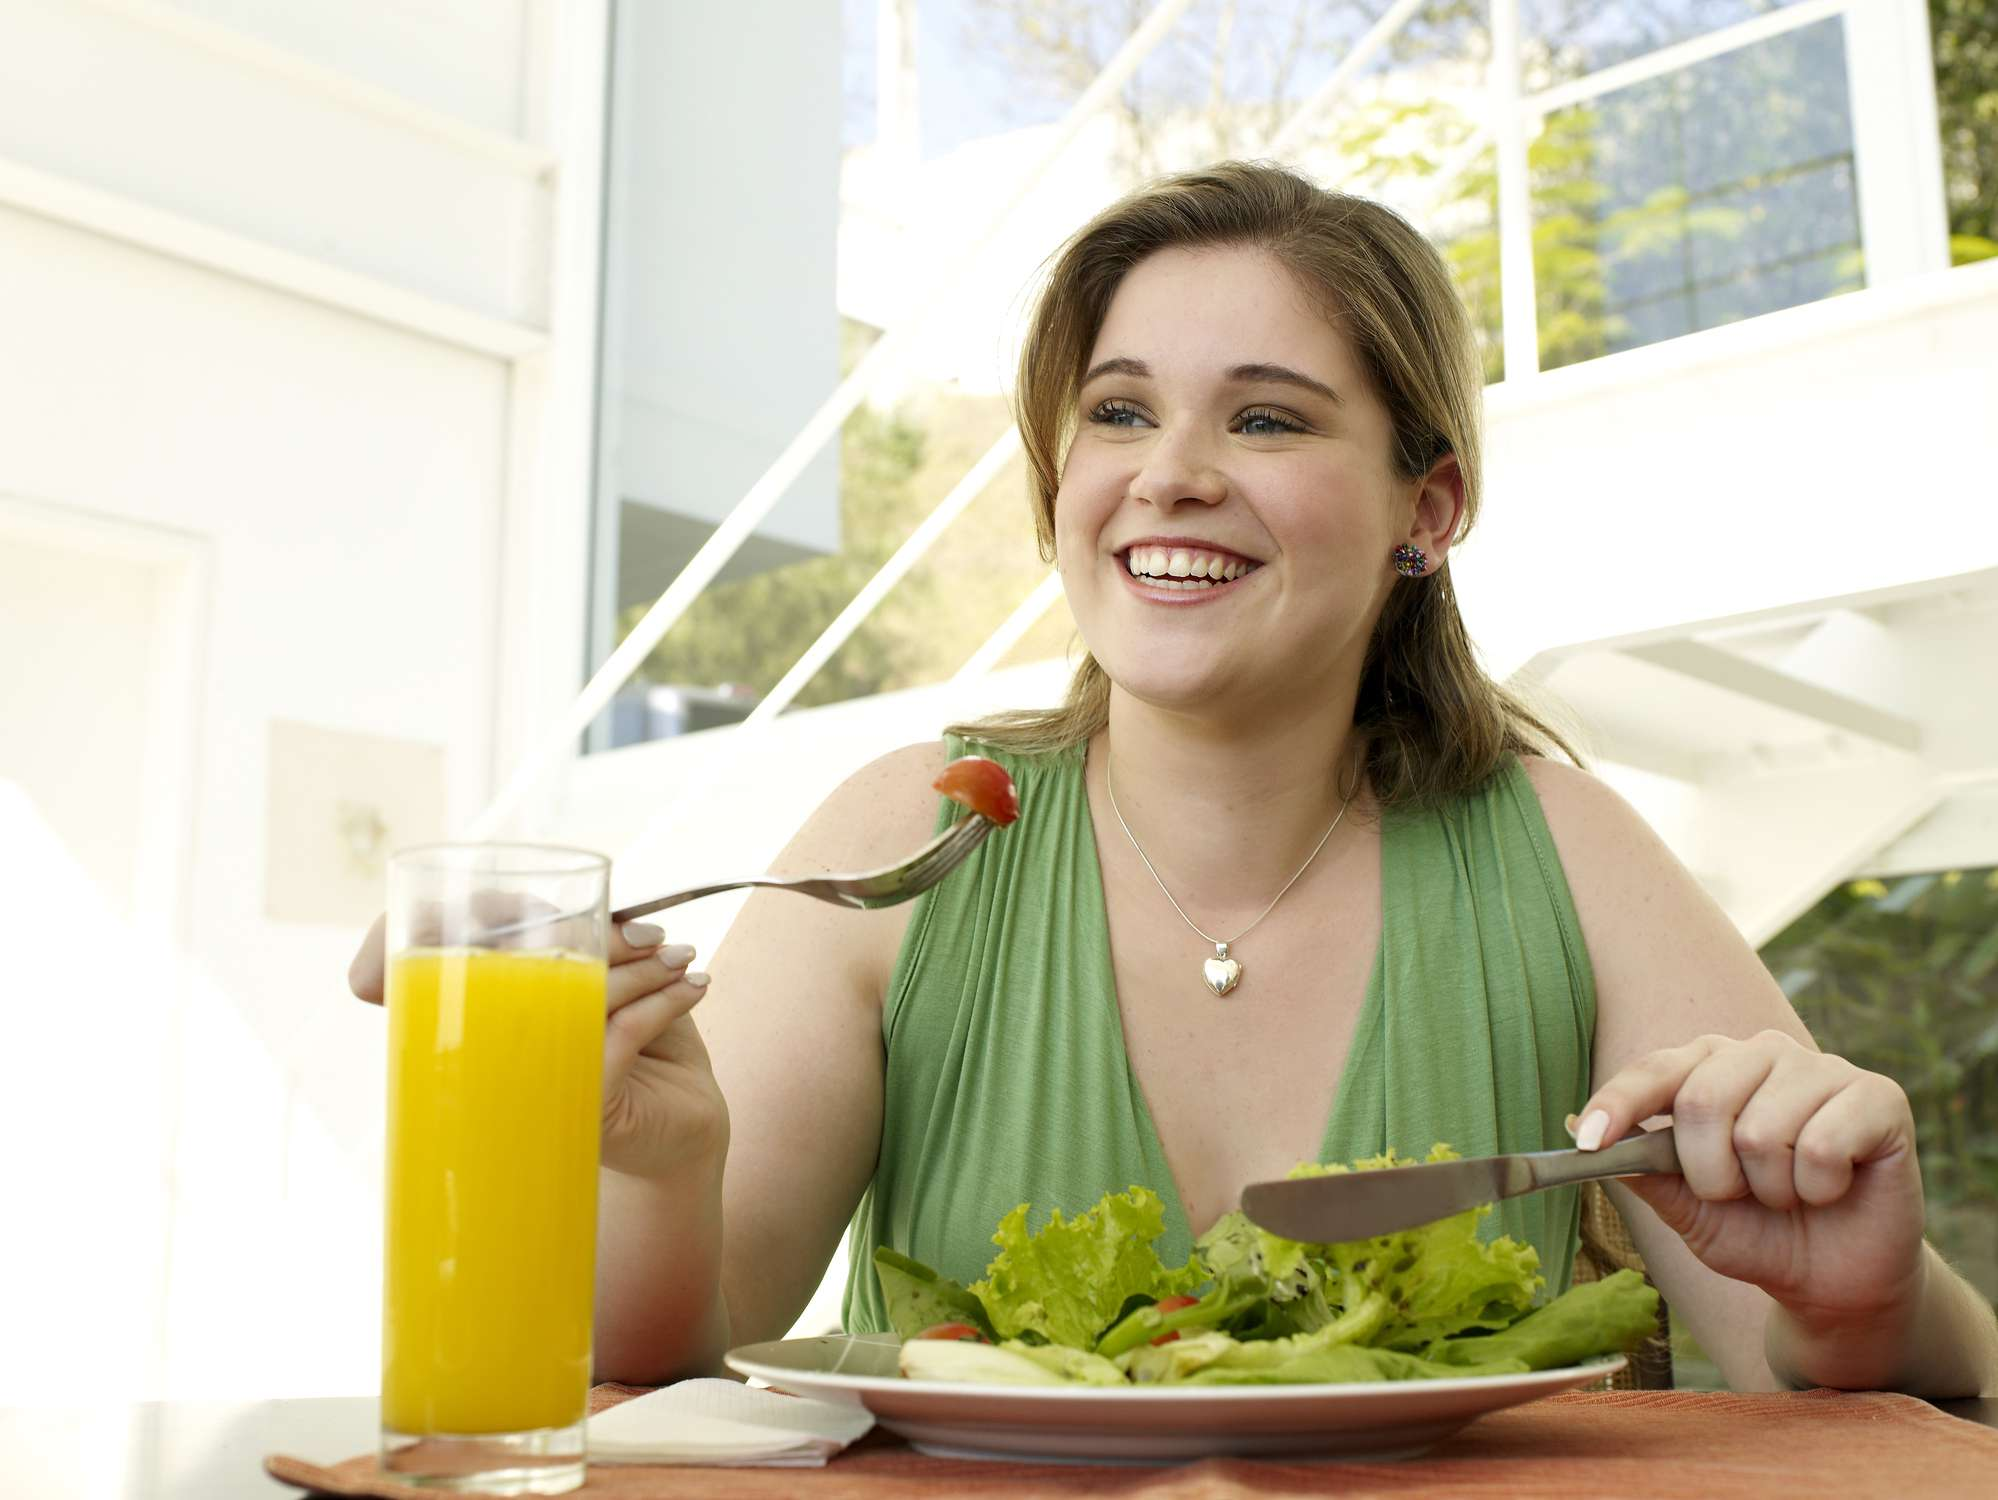 A woman eating a salad in the daytime